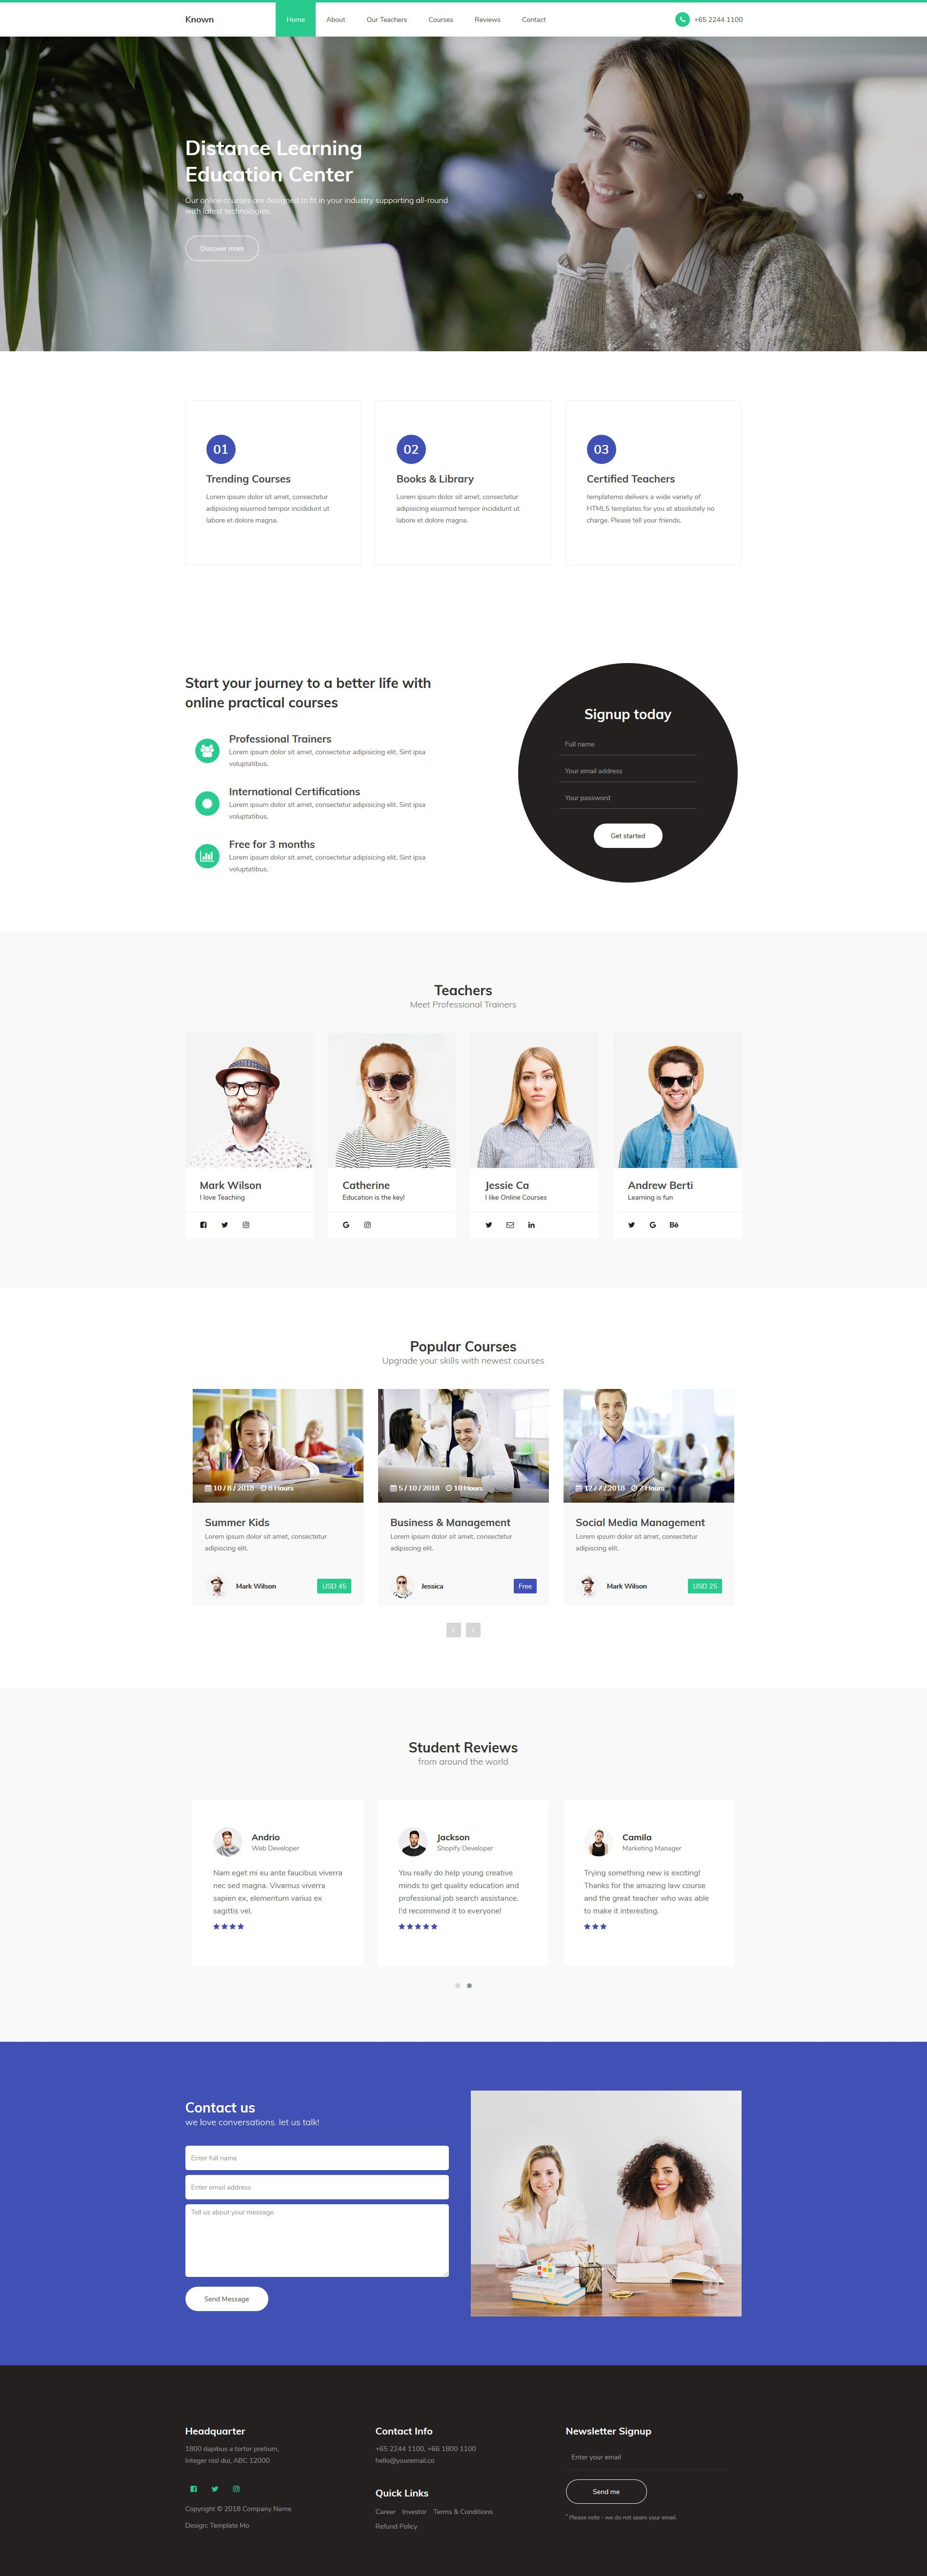 Known Education Css Template Includes A Home Page Slider Carousel Contents And Contact Section Css Templates Html And Css Templates Templates